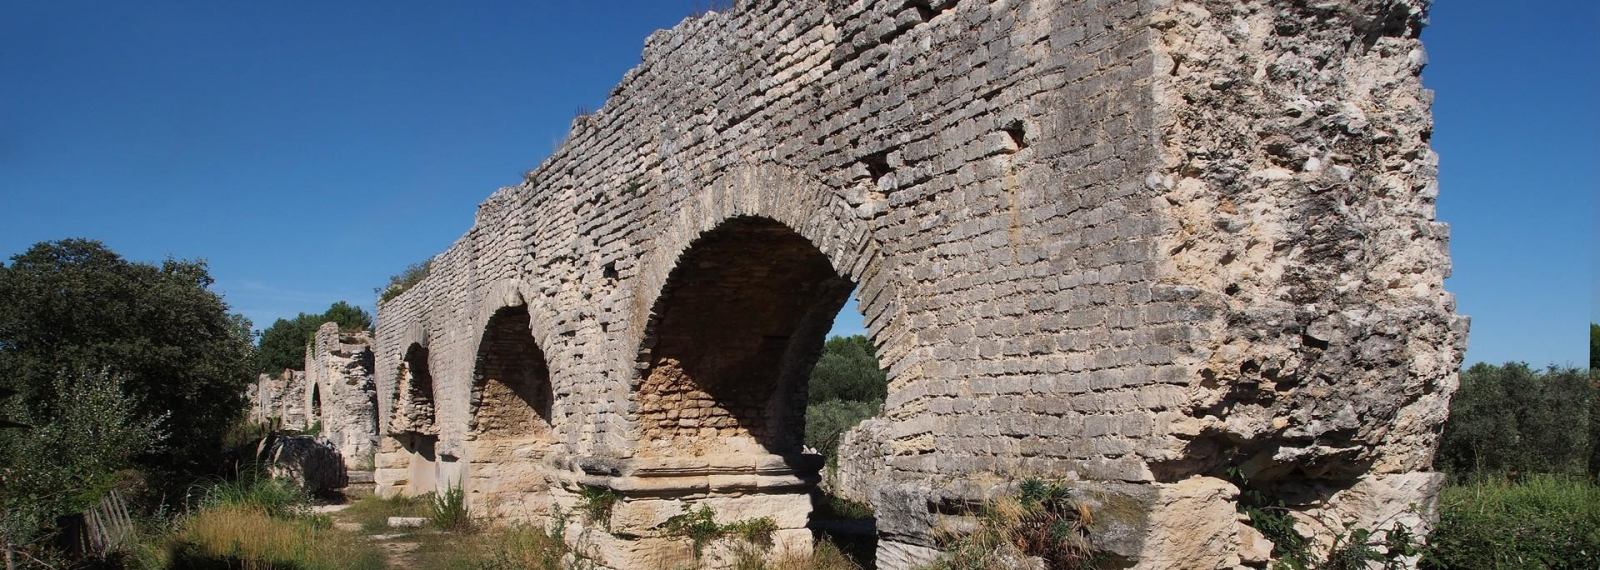 Aqueducs romains de Barbegal